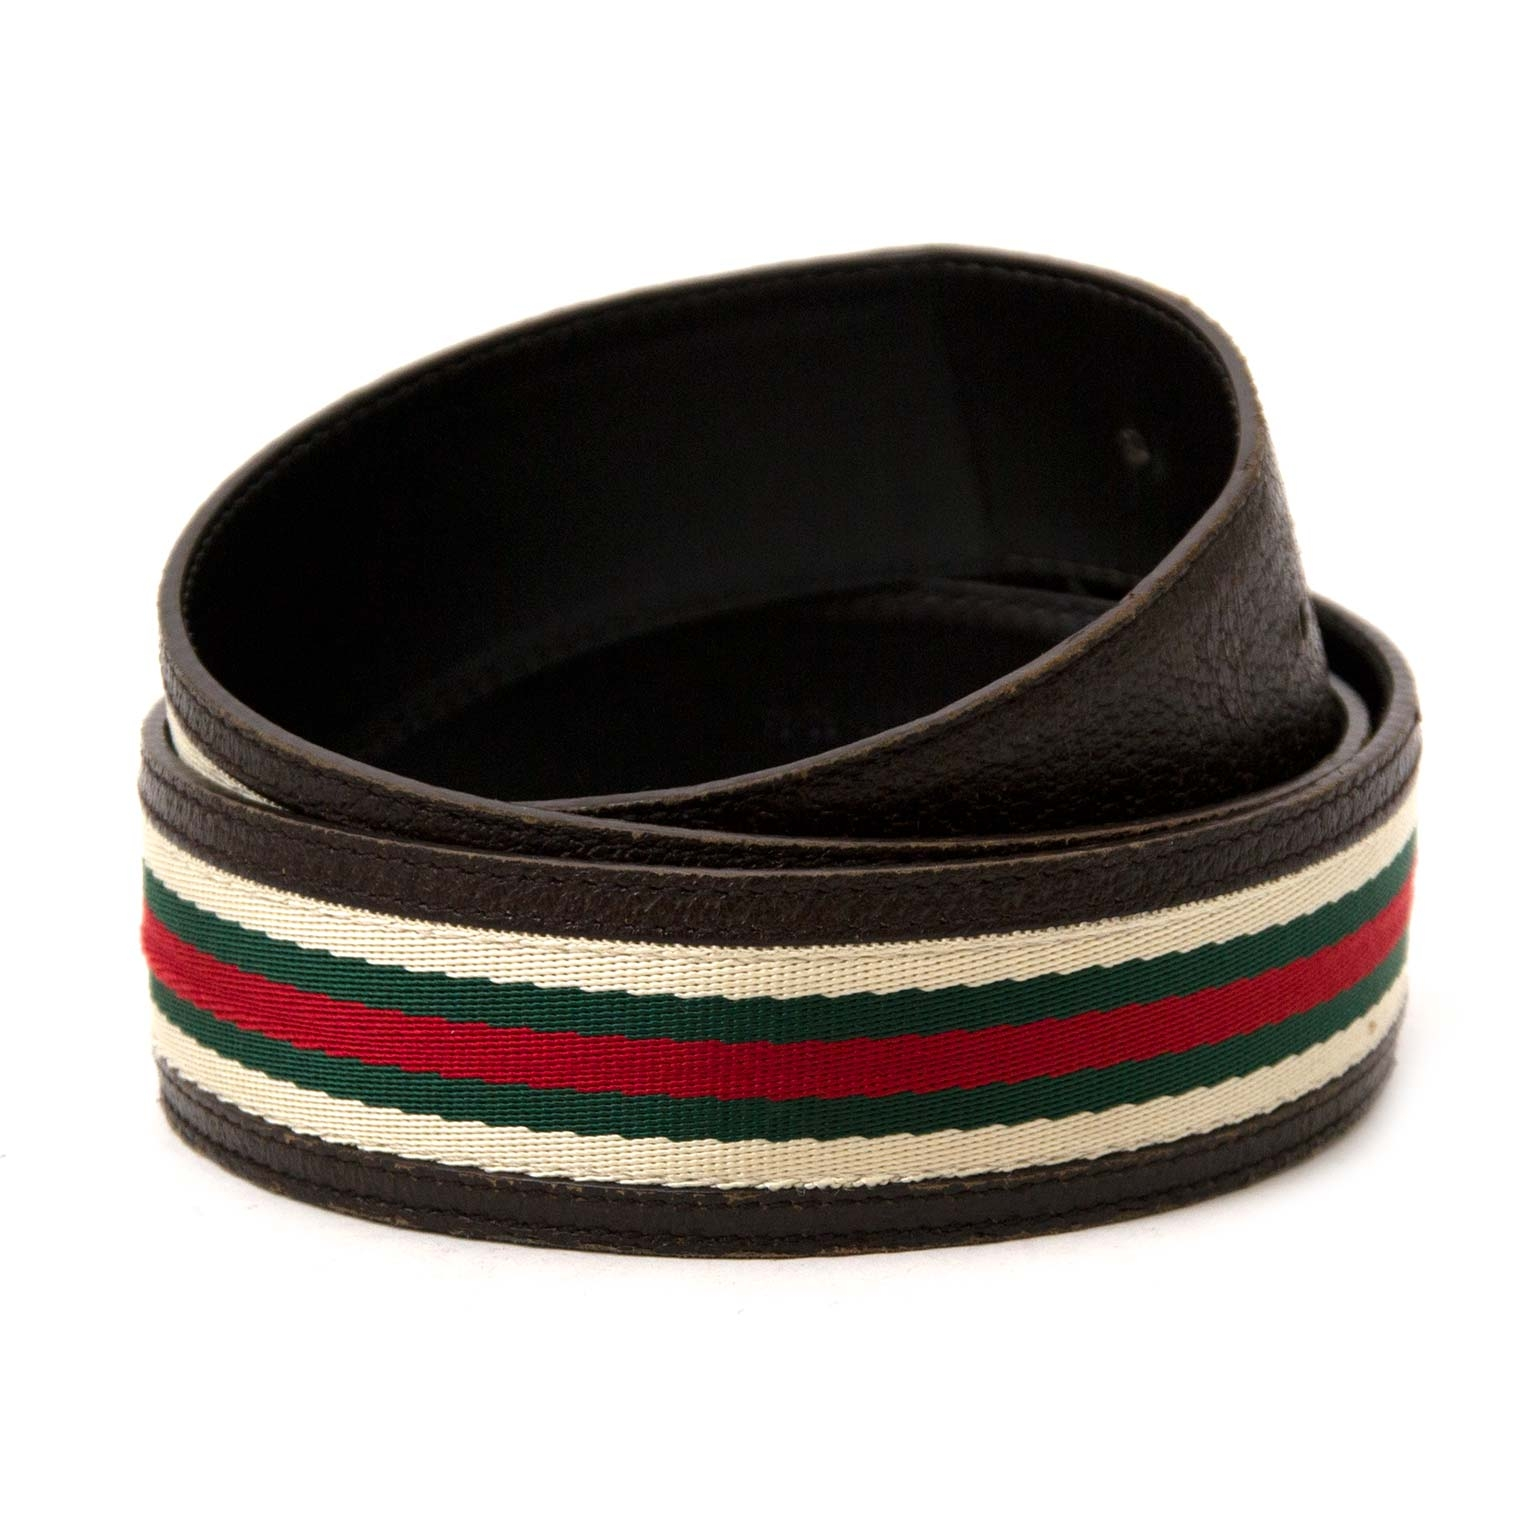 Buy authentic gucci web interlocking g belts at labellov vintage fashion webshop belgium